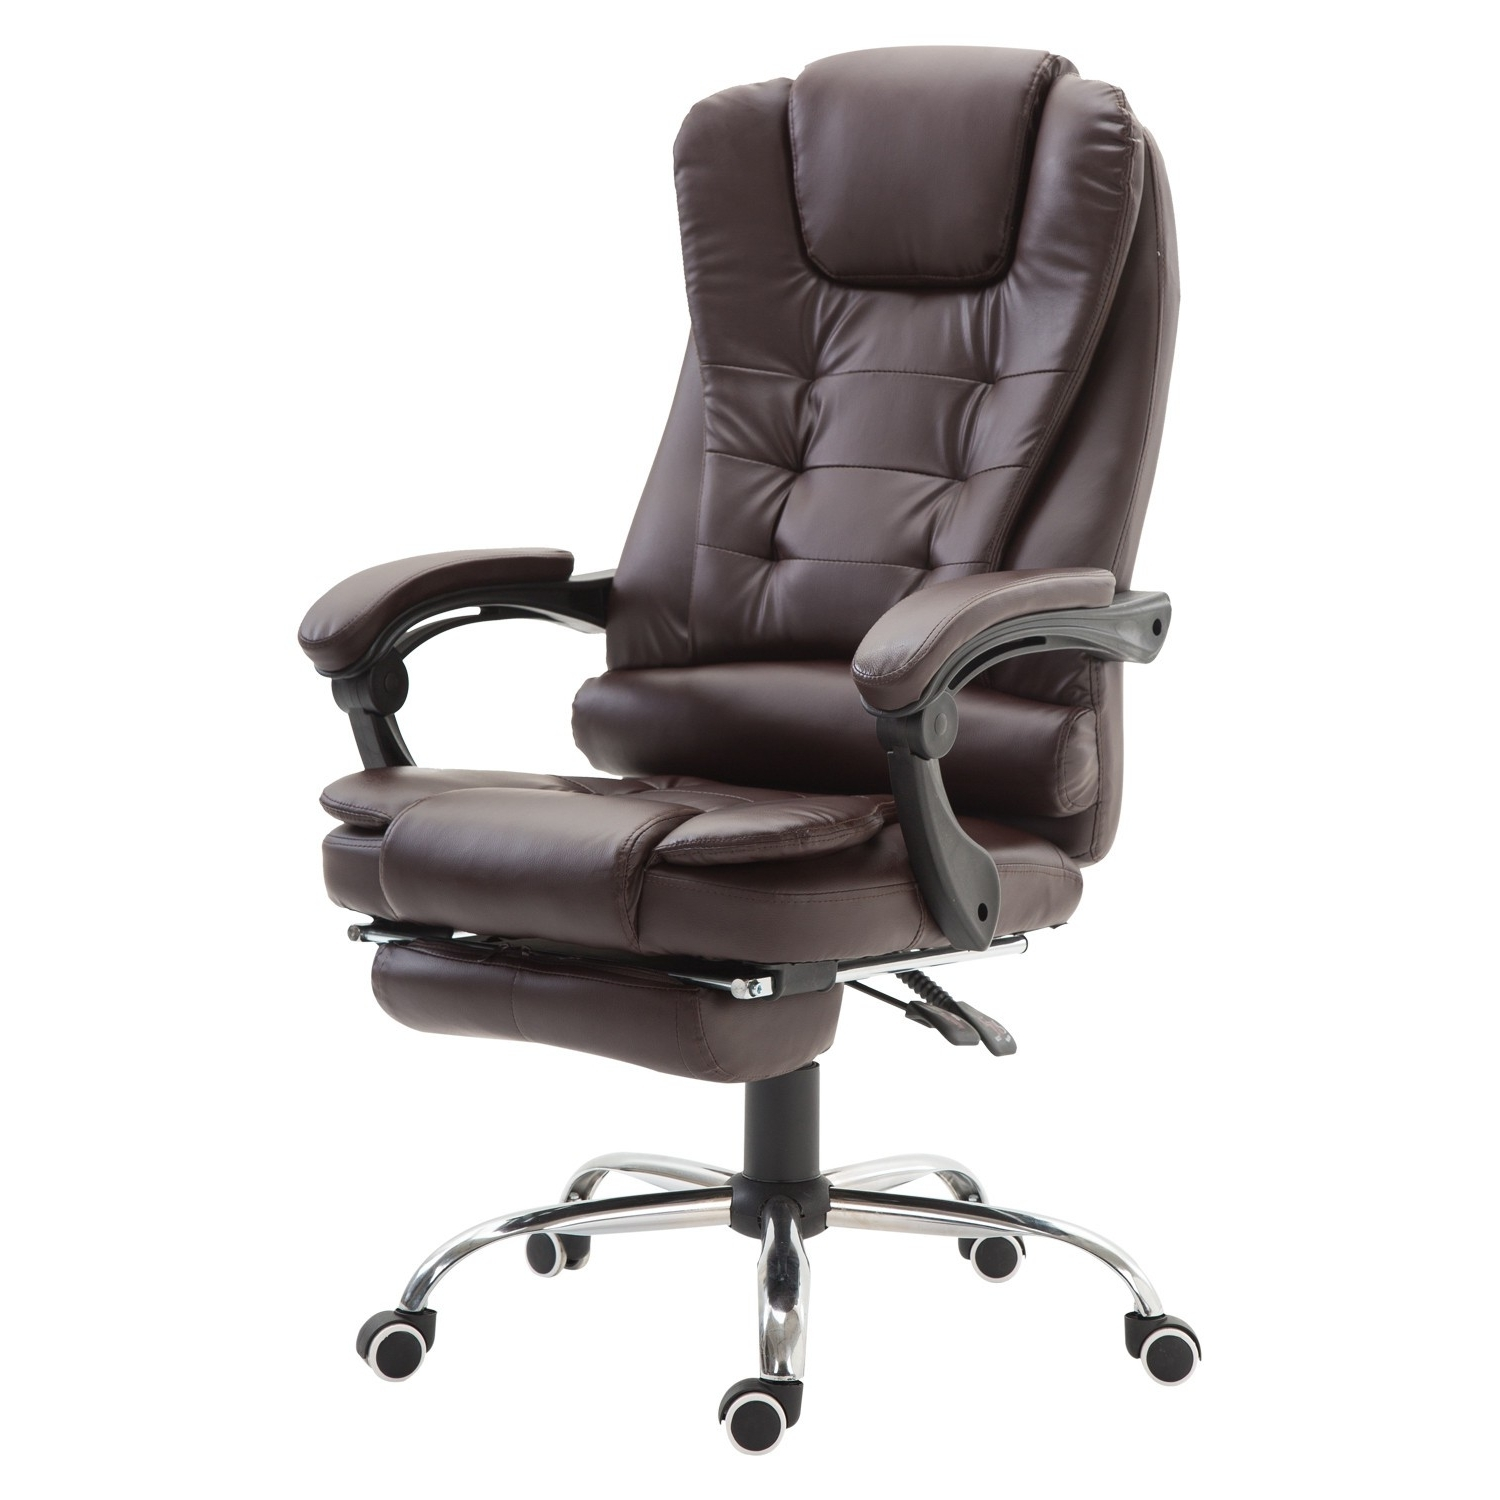 Heavy Duty Executive Office Chairs Inside Well Known Homcom Executive Style Reclining Office Napping Chair Pu Leather W (View 16 of 20)